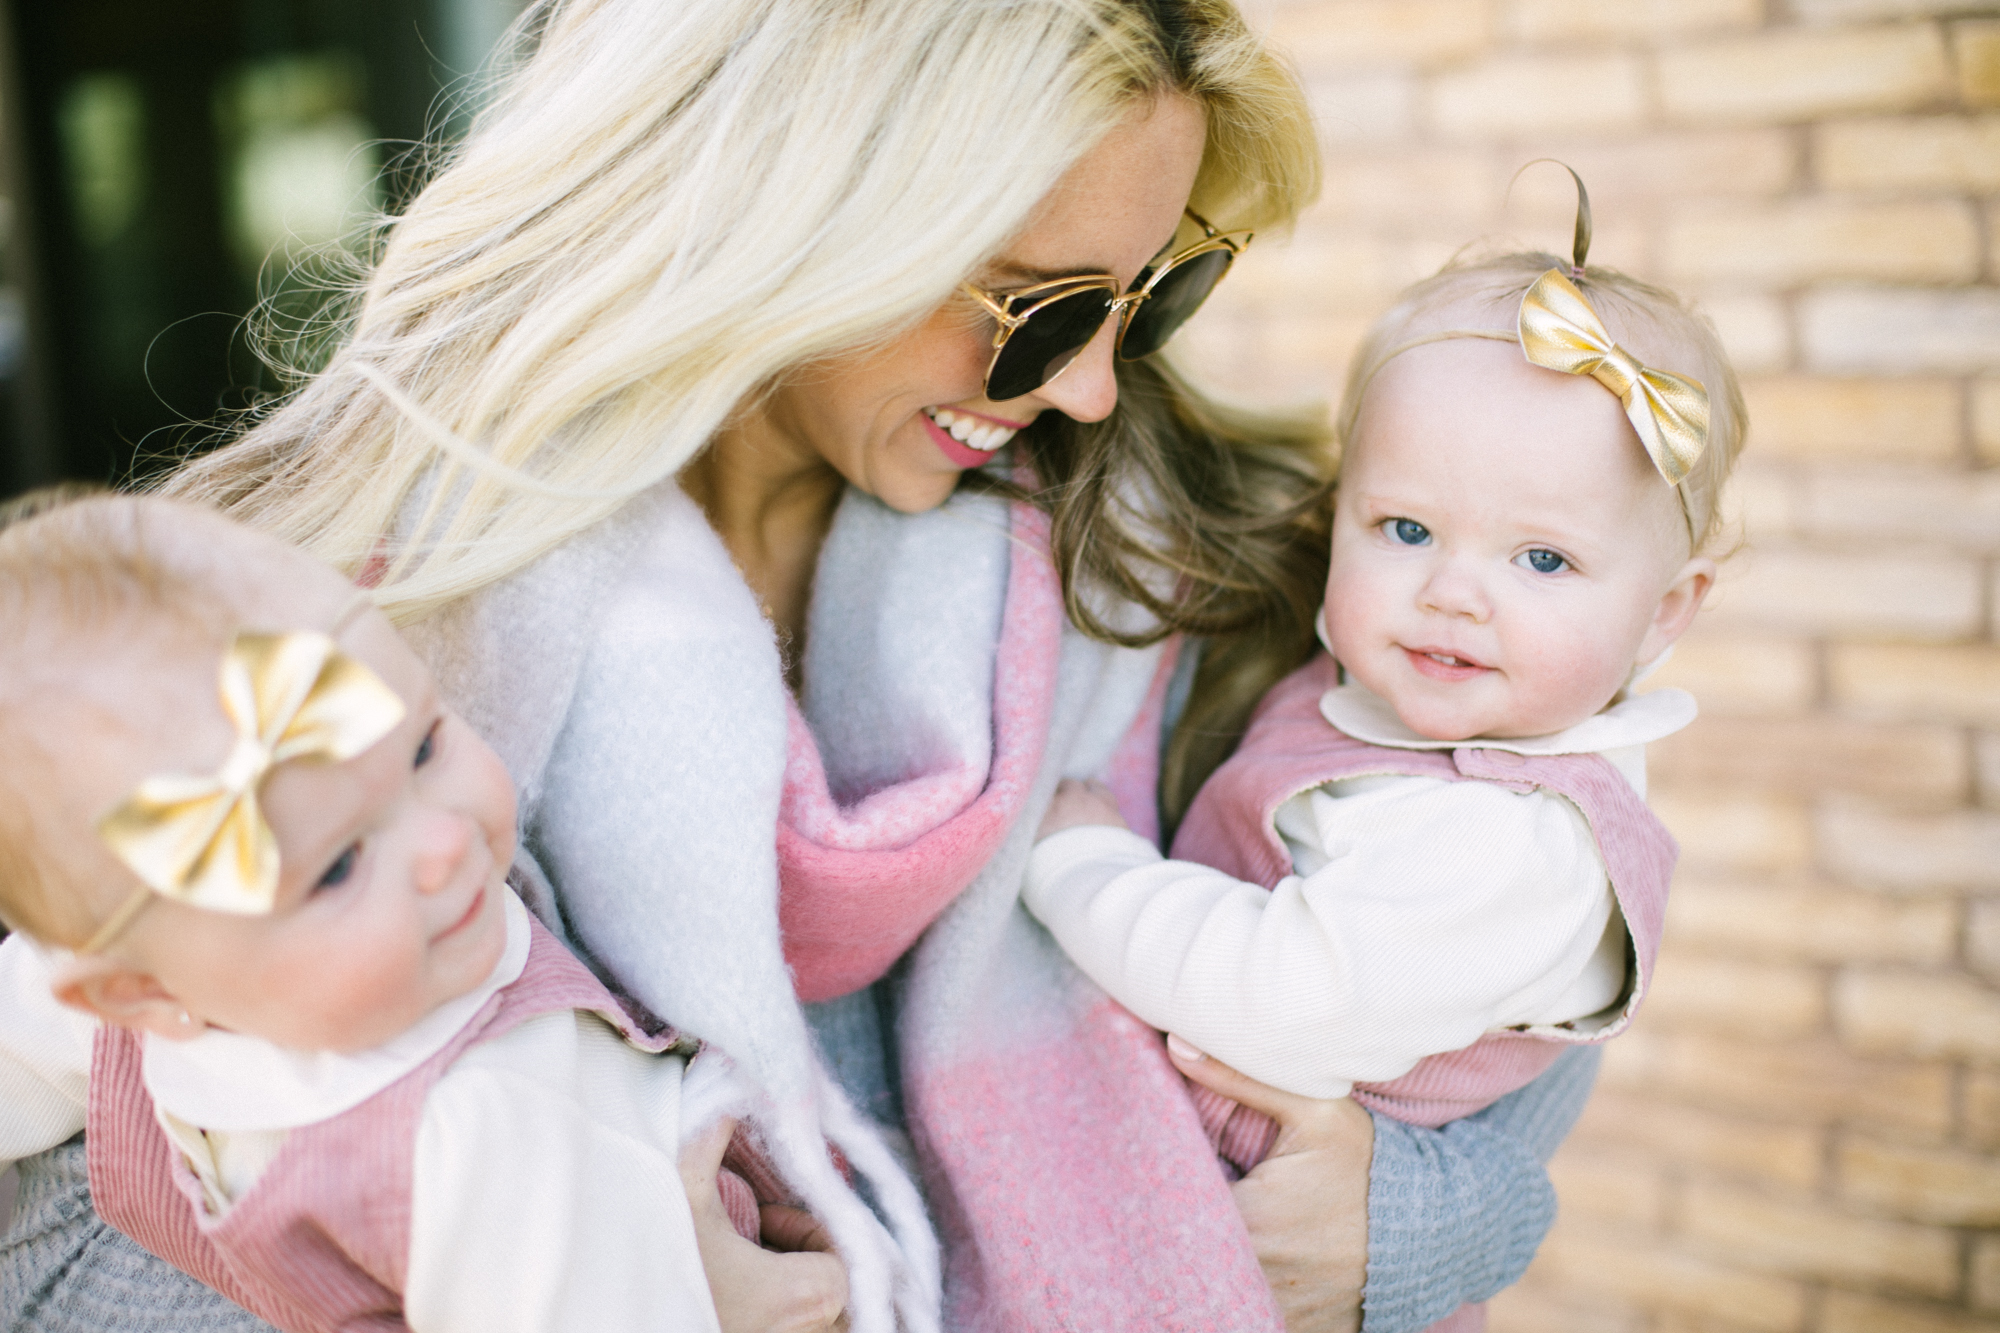 Twin Tips by popular Las Vegas mom bloggers Life of a Sister